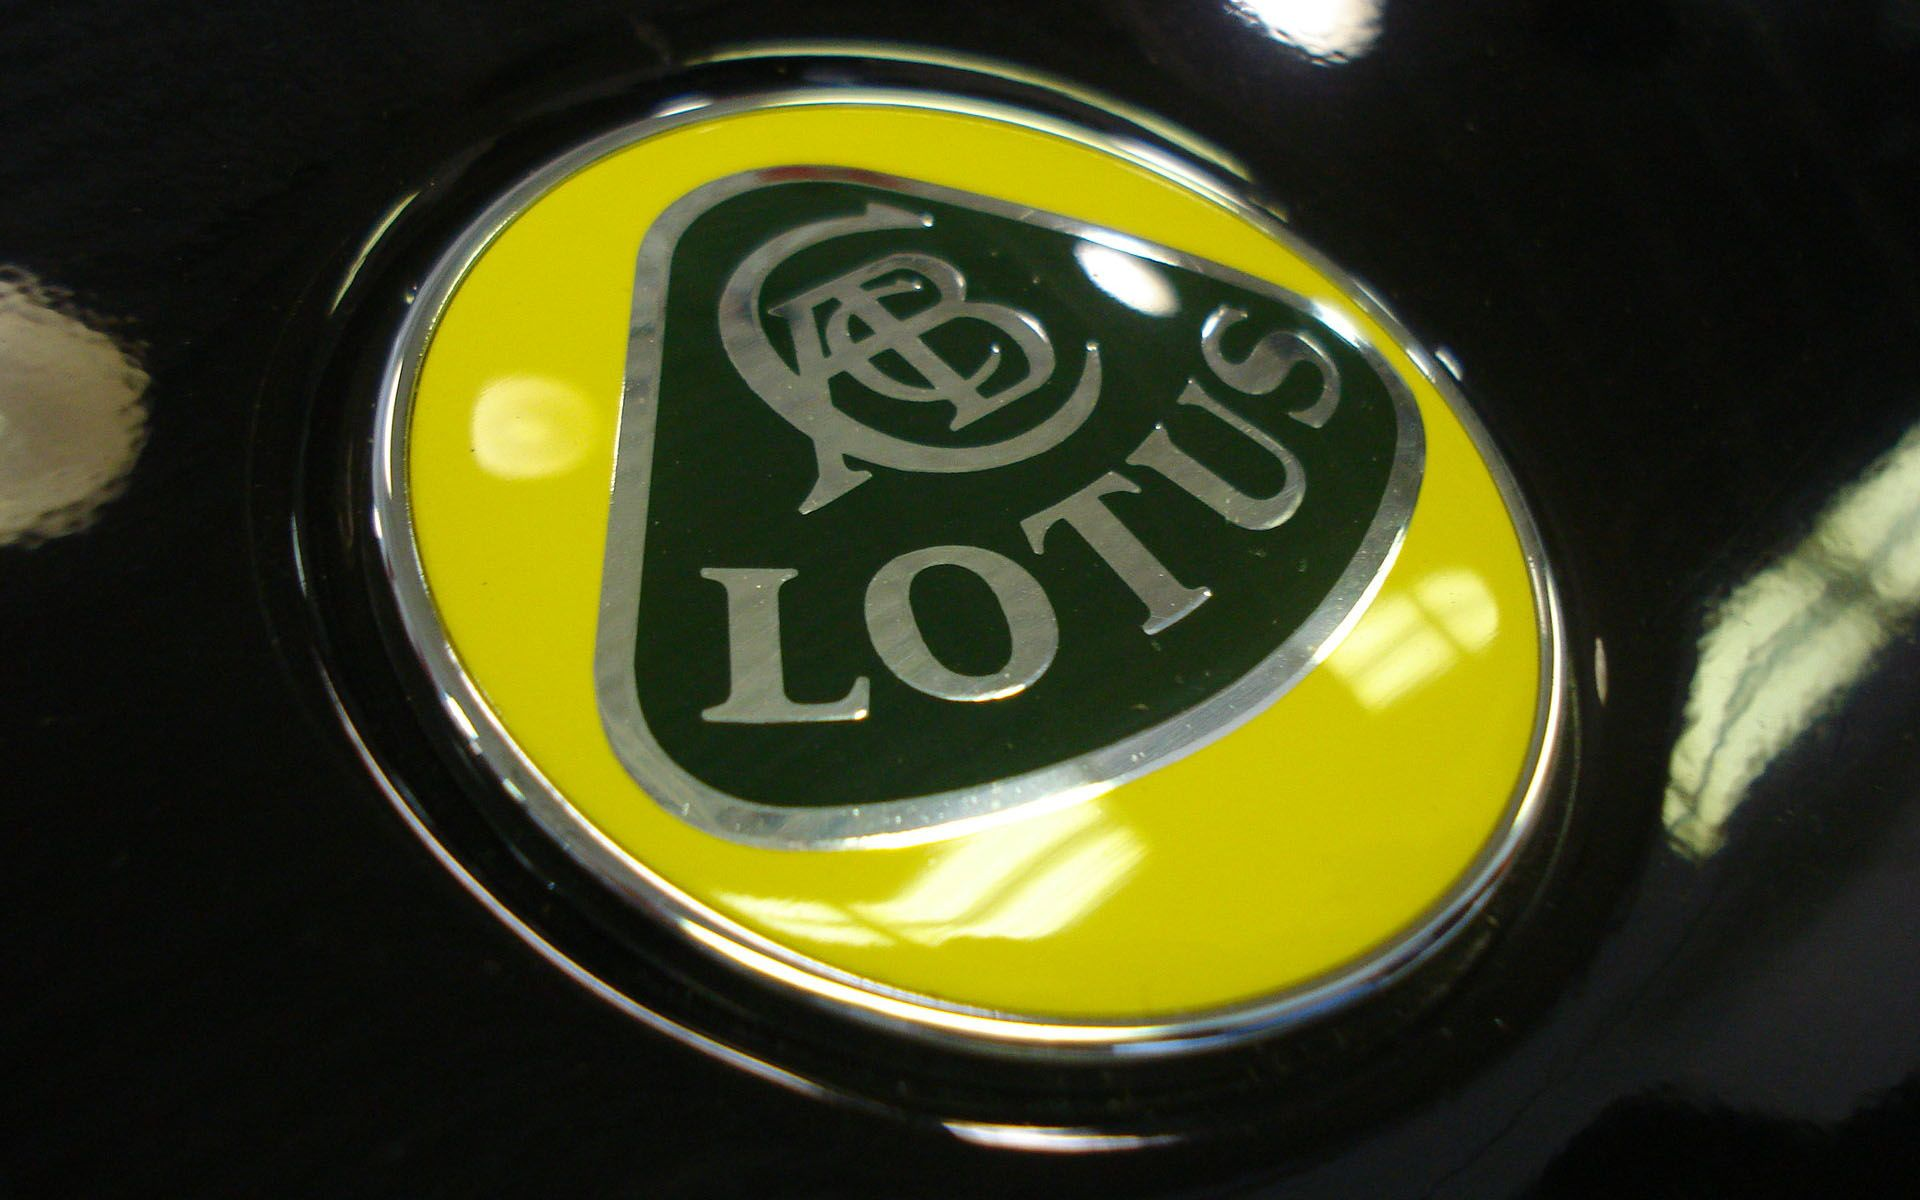 Lotus Car Logo Wallpaper Wallpaper.